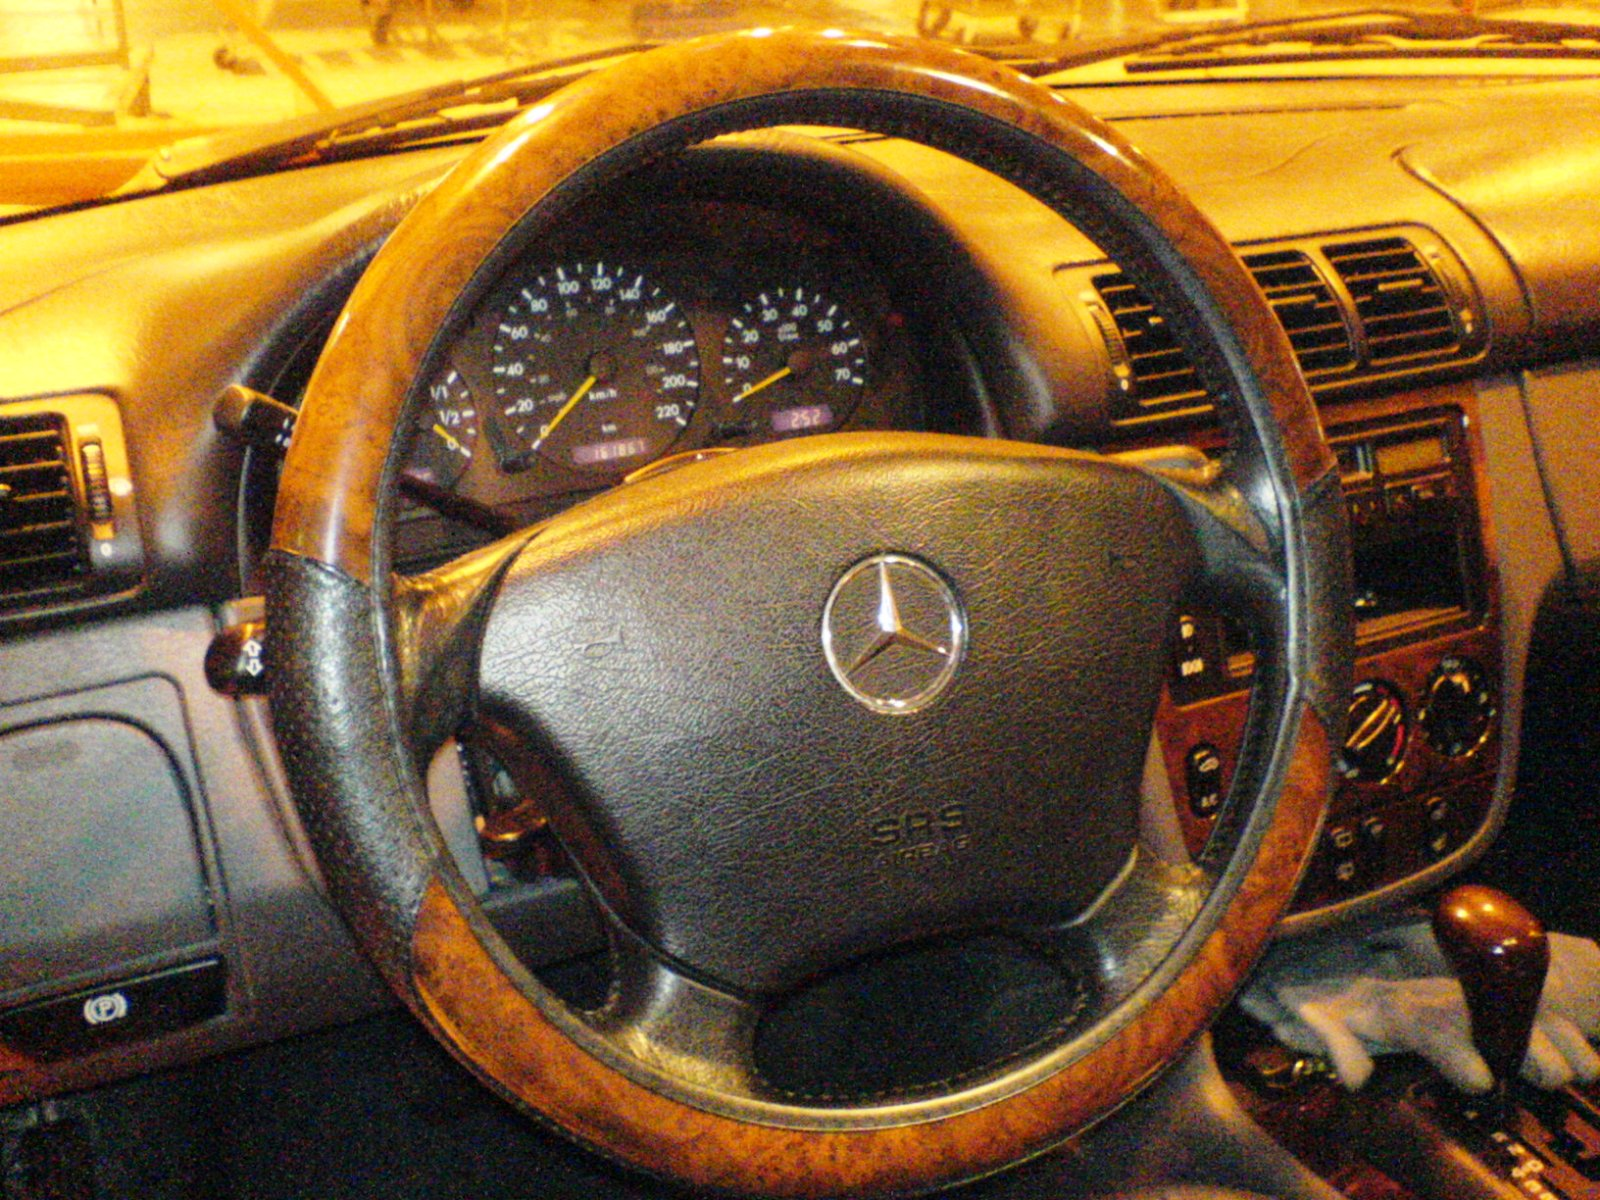 Mercedes Benz Rims >> Burlwood/leather steering wheel cover - Mercedes-Benz Forum